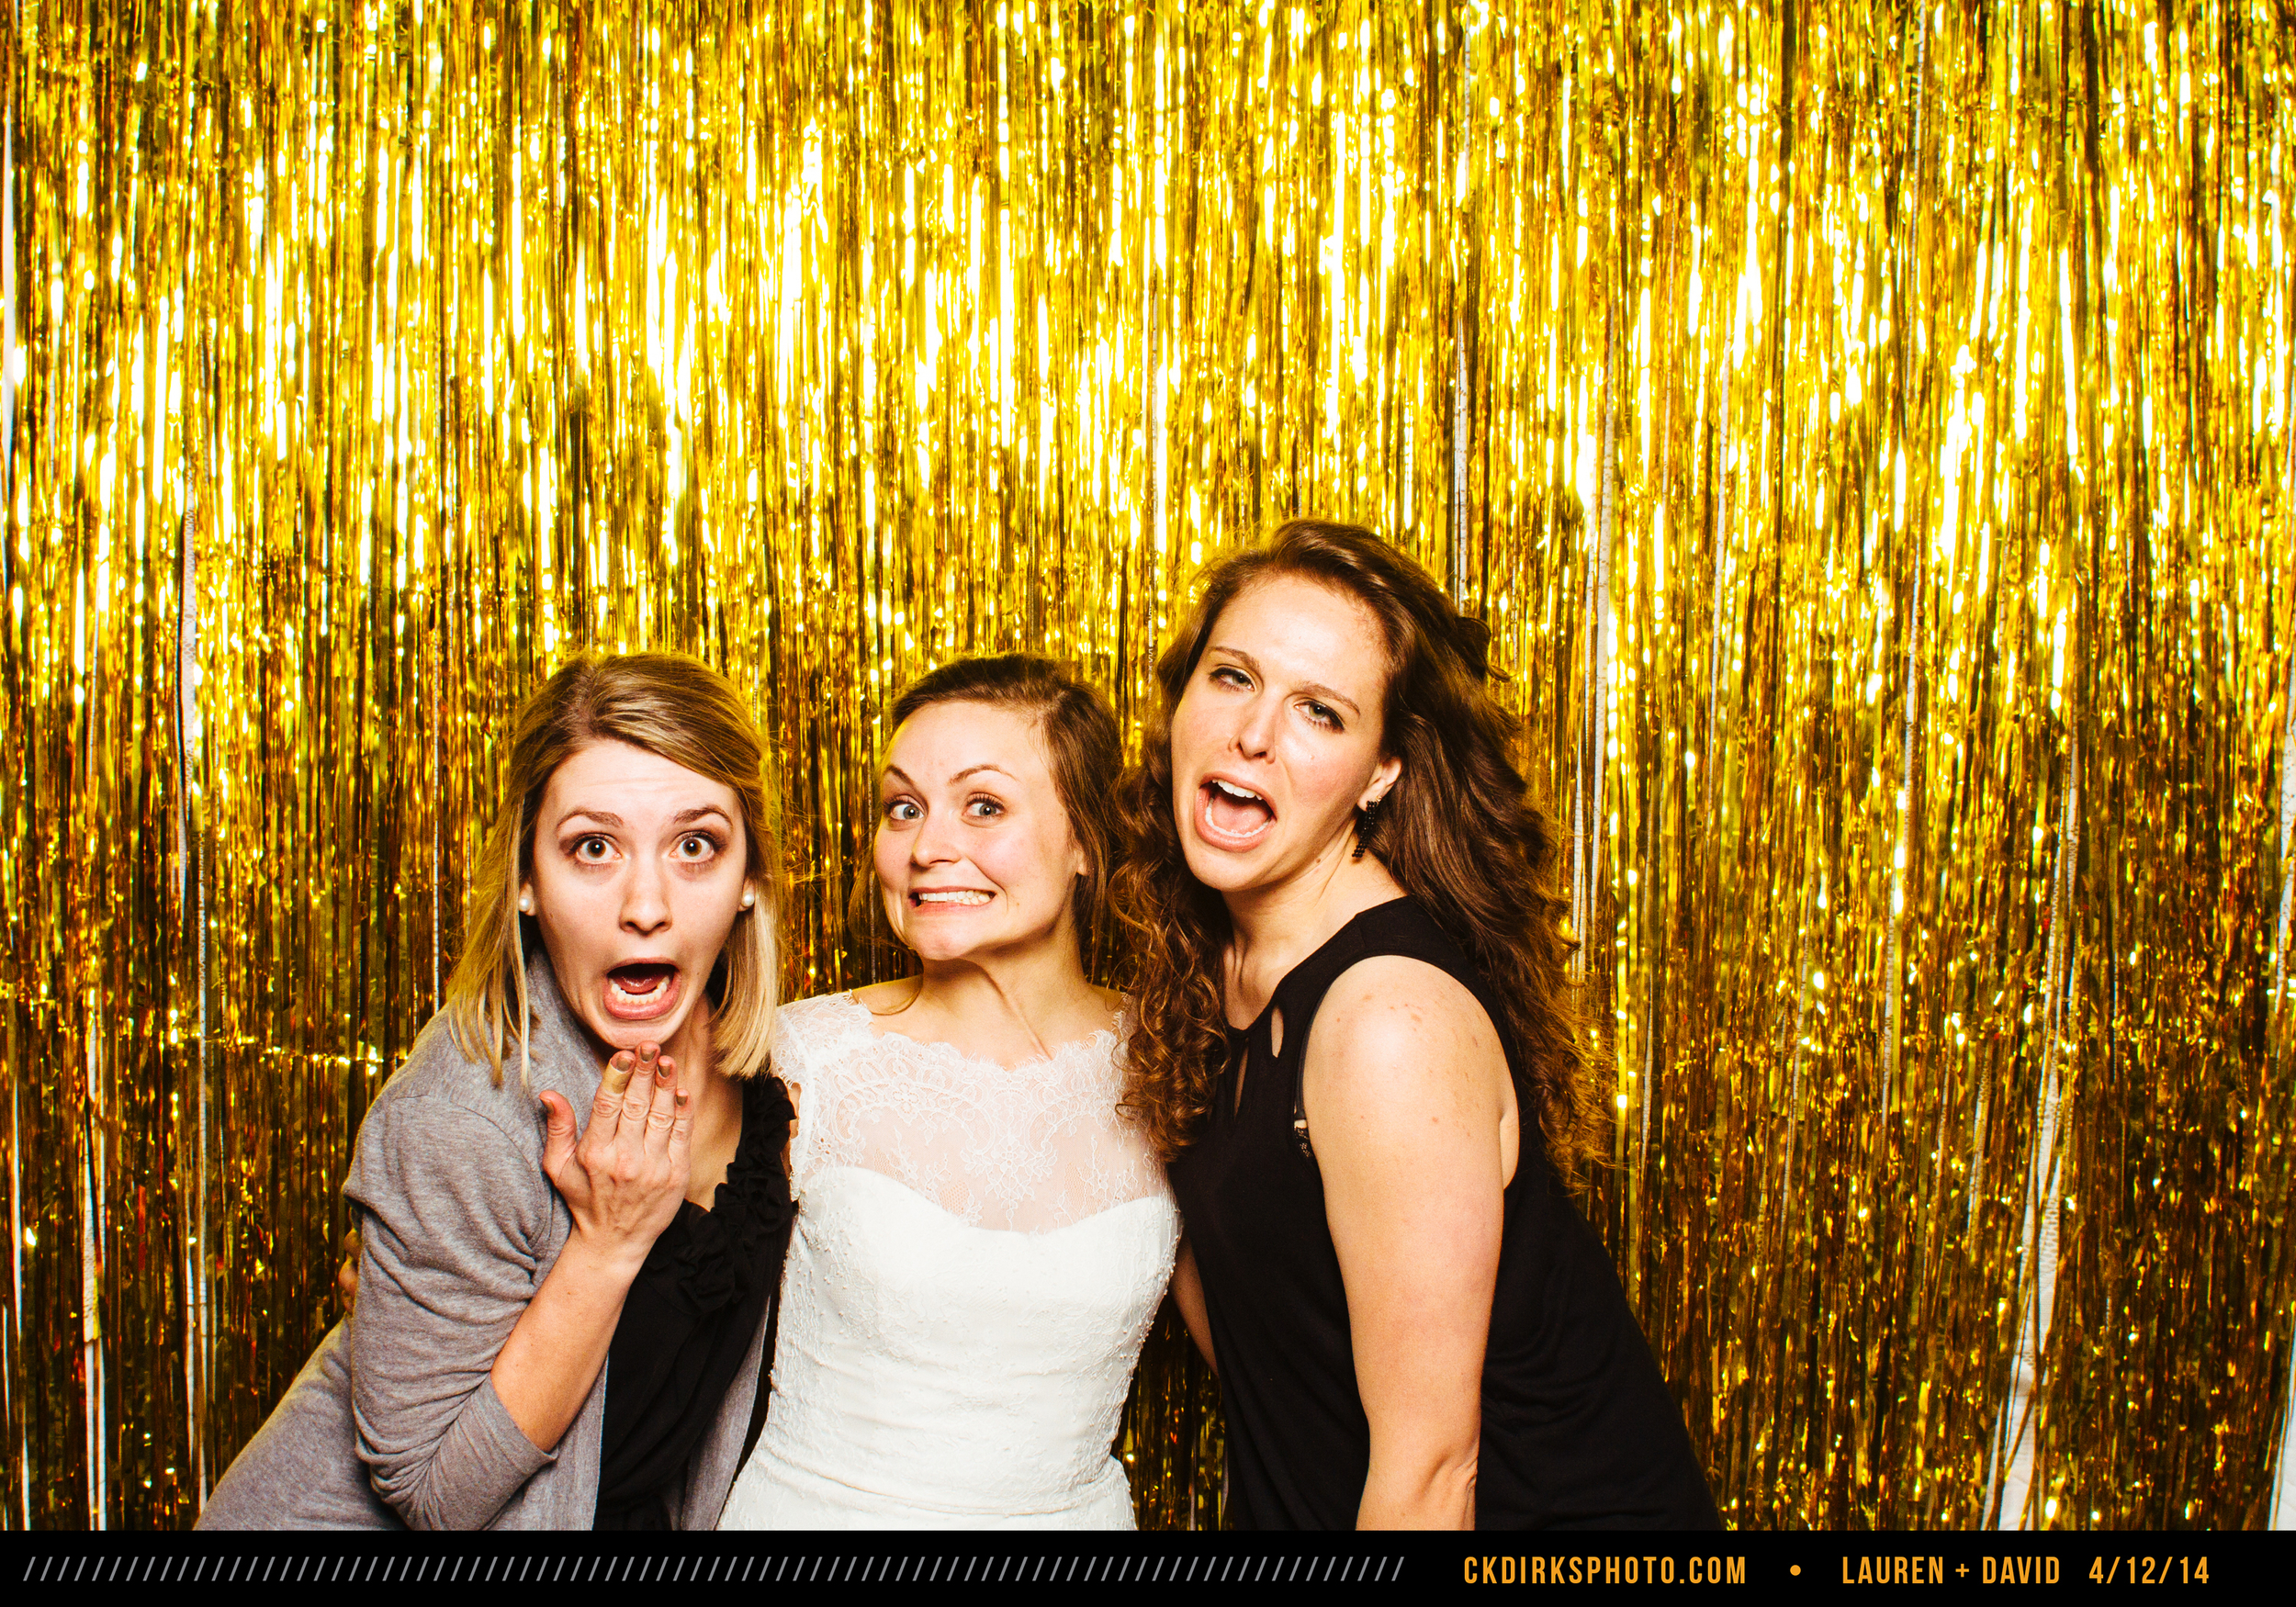 Taken from the photo booth at Lauren & David's affair Apr. 12!